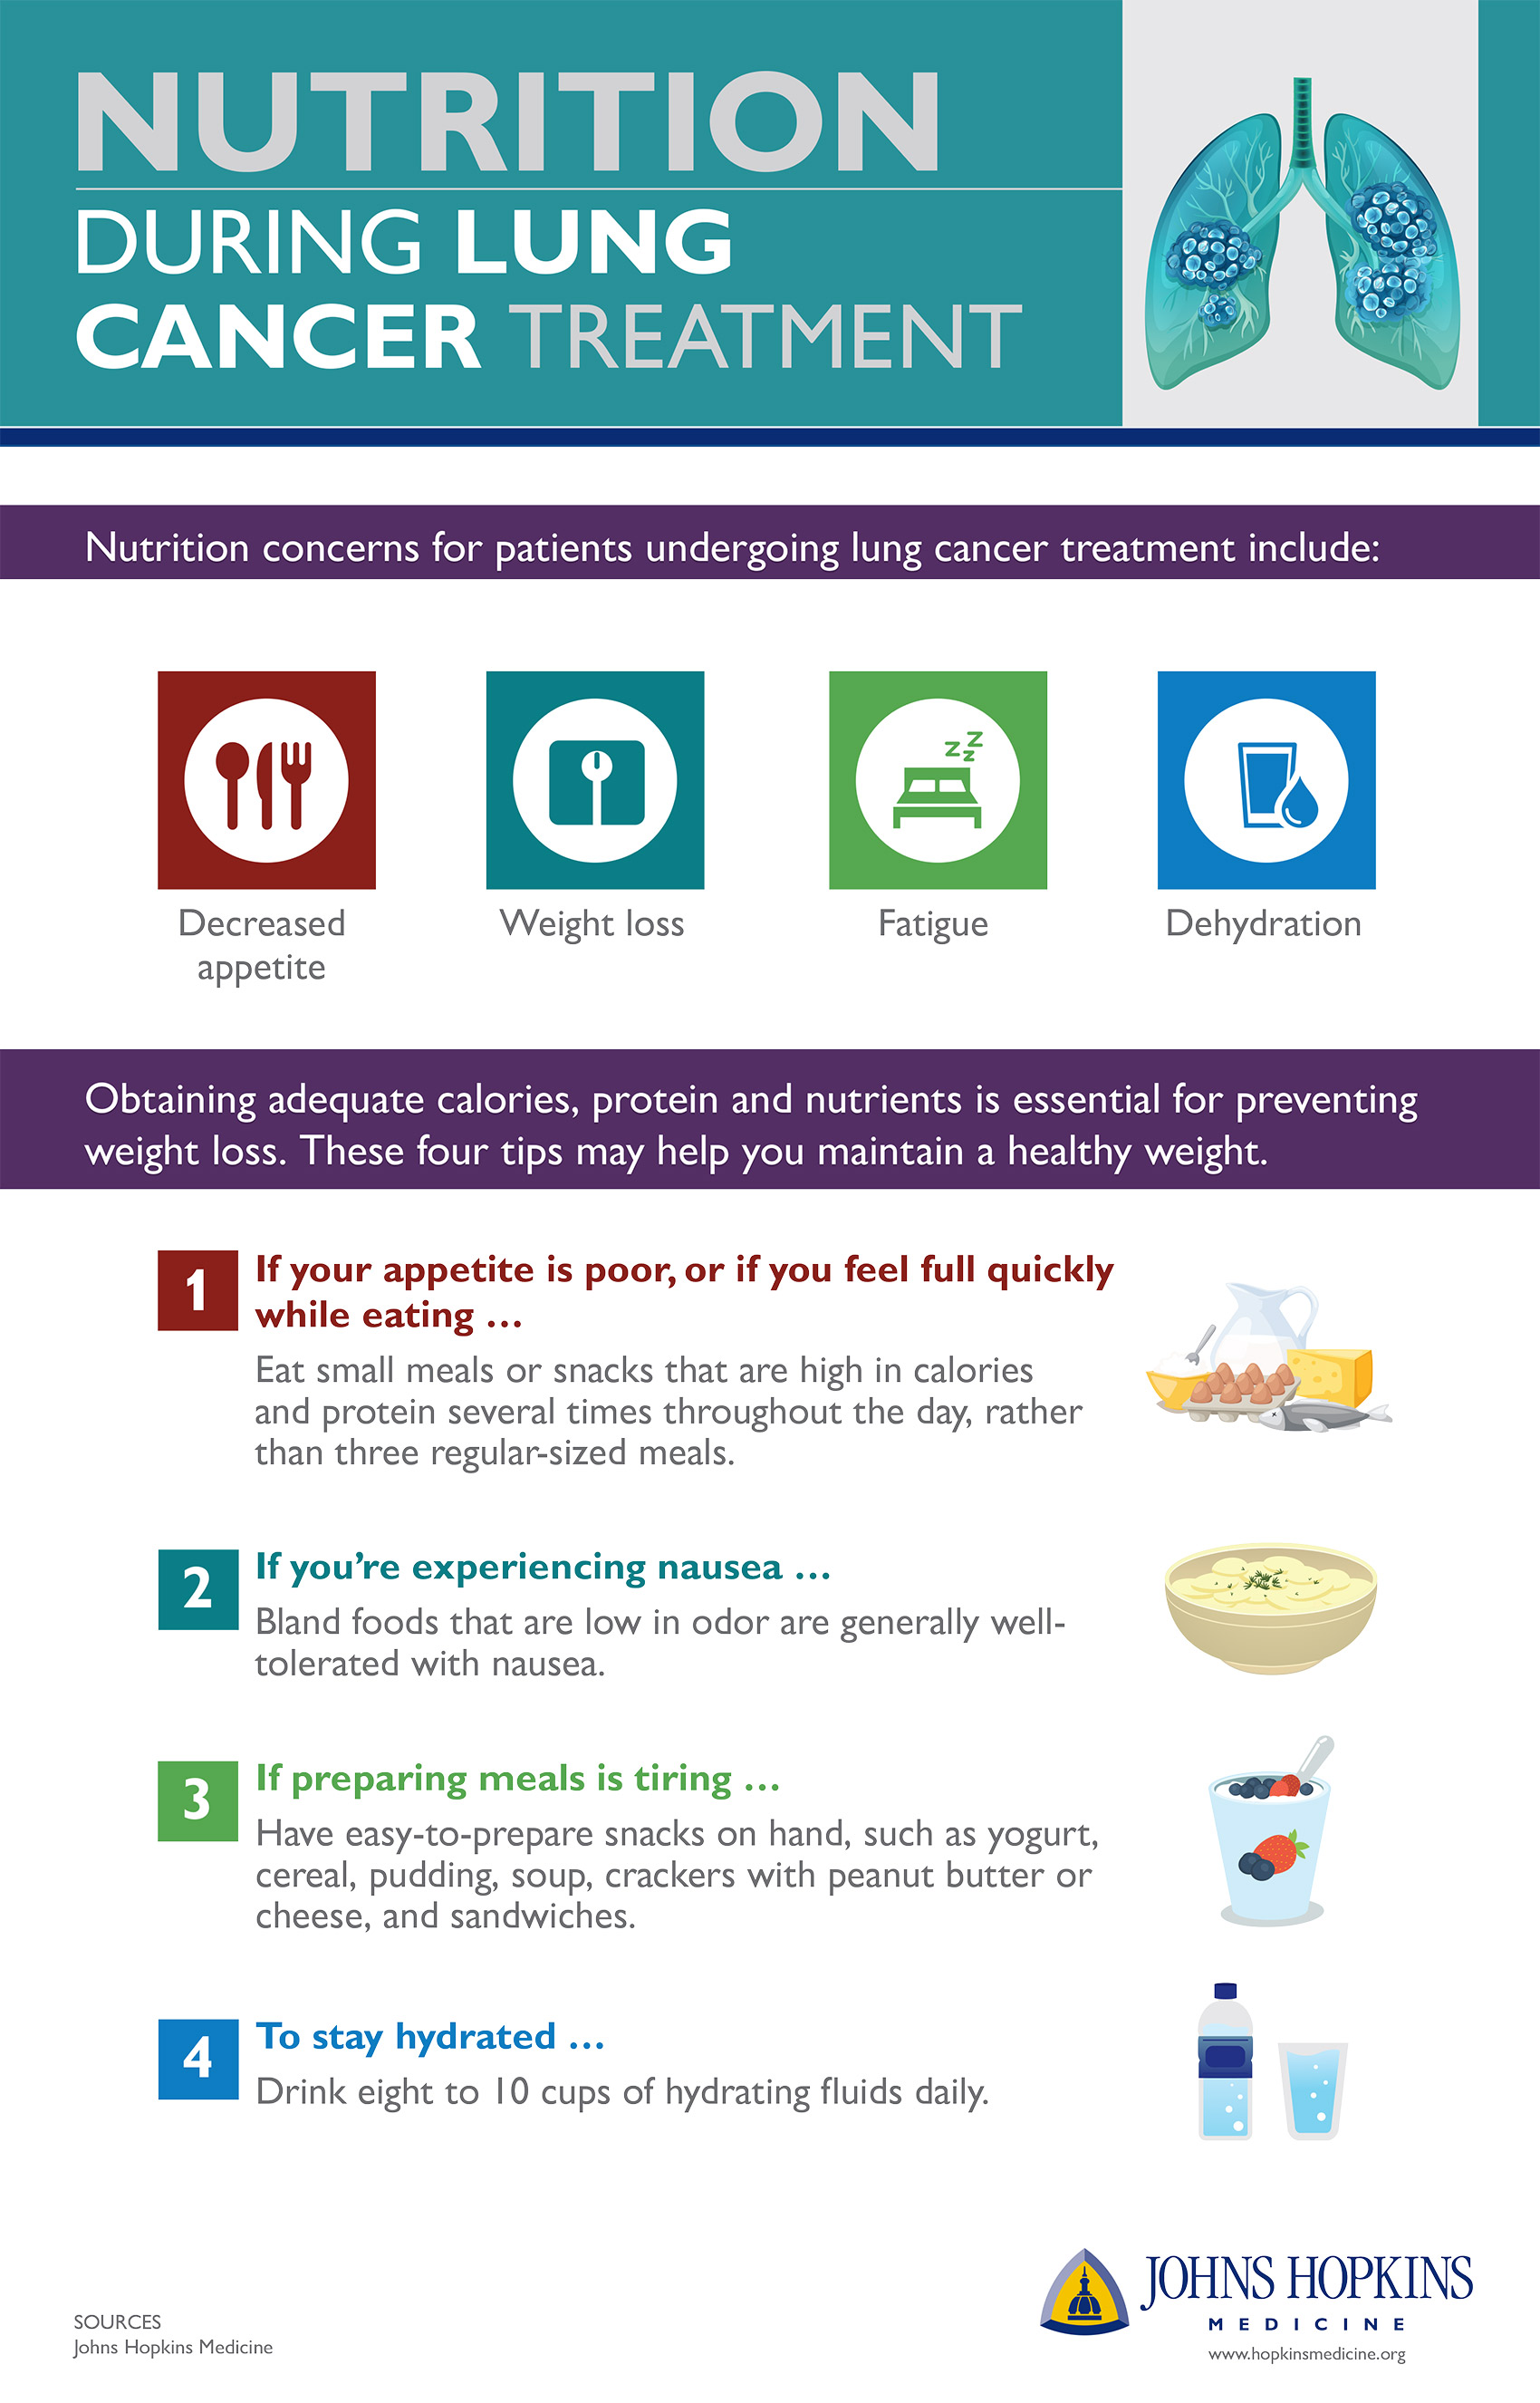 An infographic detailing nutrition during lung cancer treatment.